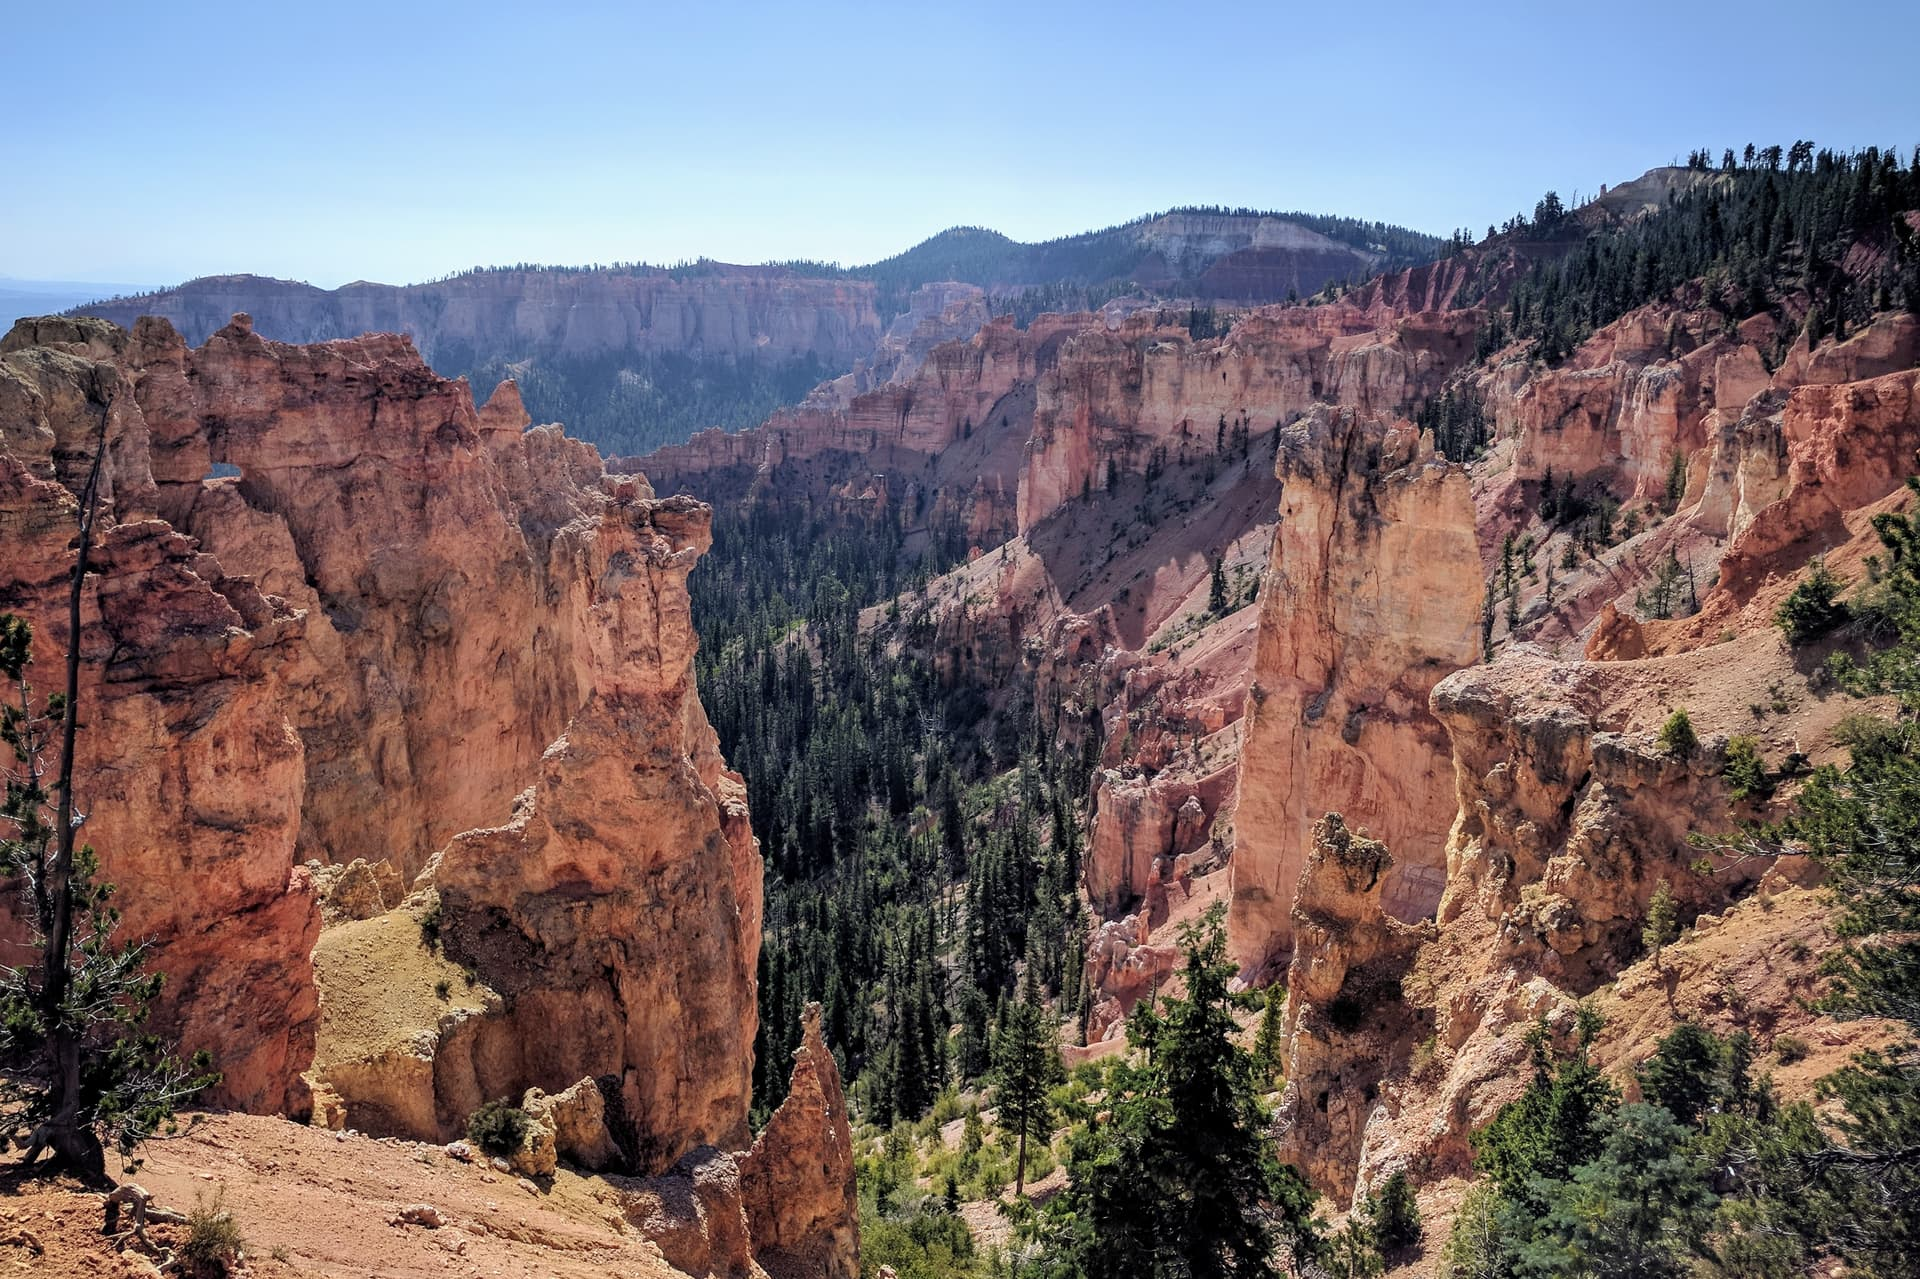 Looking down a steep gulch in the wall of Bryce Canyon to the pine forest below. Red and white pillars of soft rock cluster together, eventually becoming the rim of the Canyon. The pillars stop abruptly, and are immediately replaced by a pine forest.